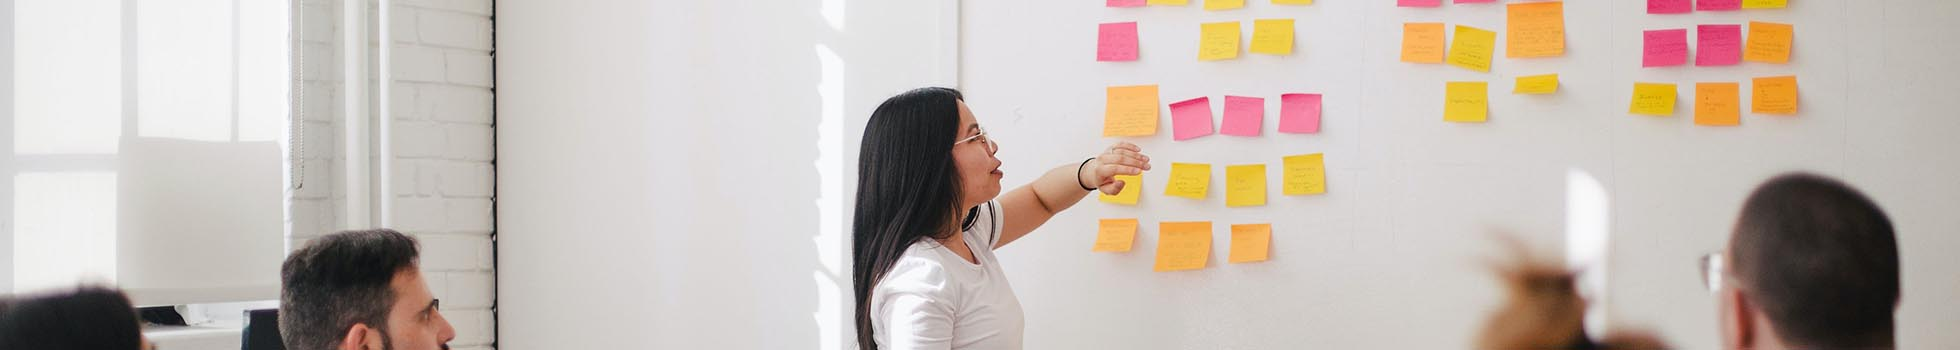 Woman standing in front of a whiteboard with post-it notes.